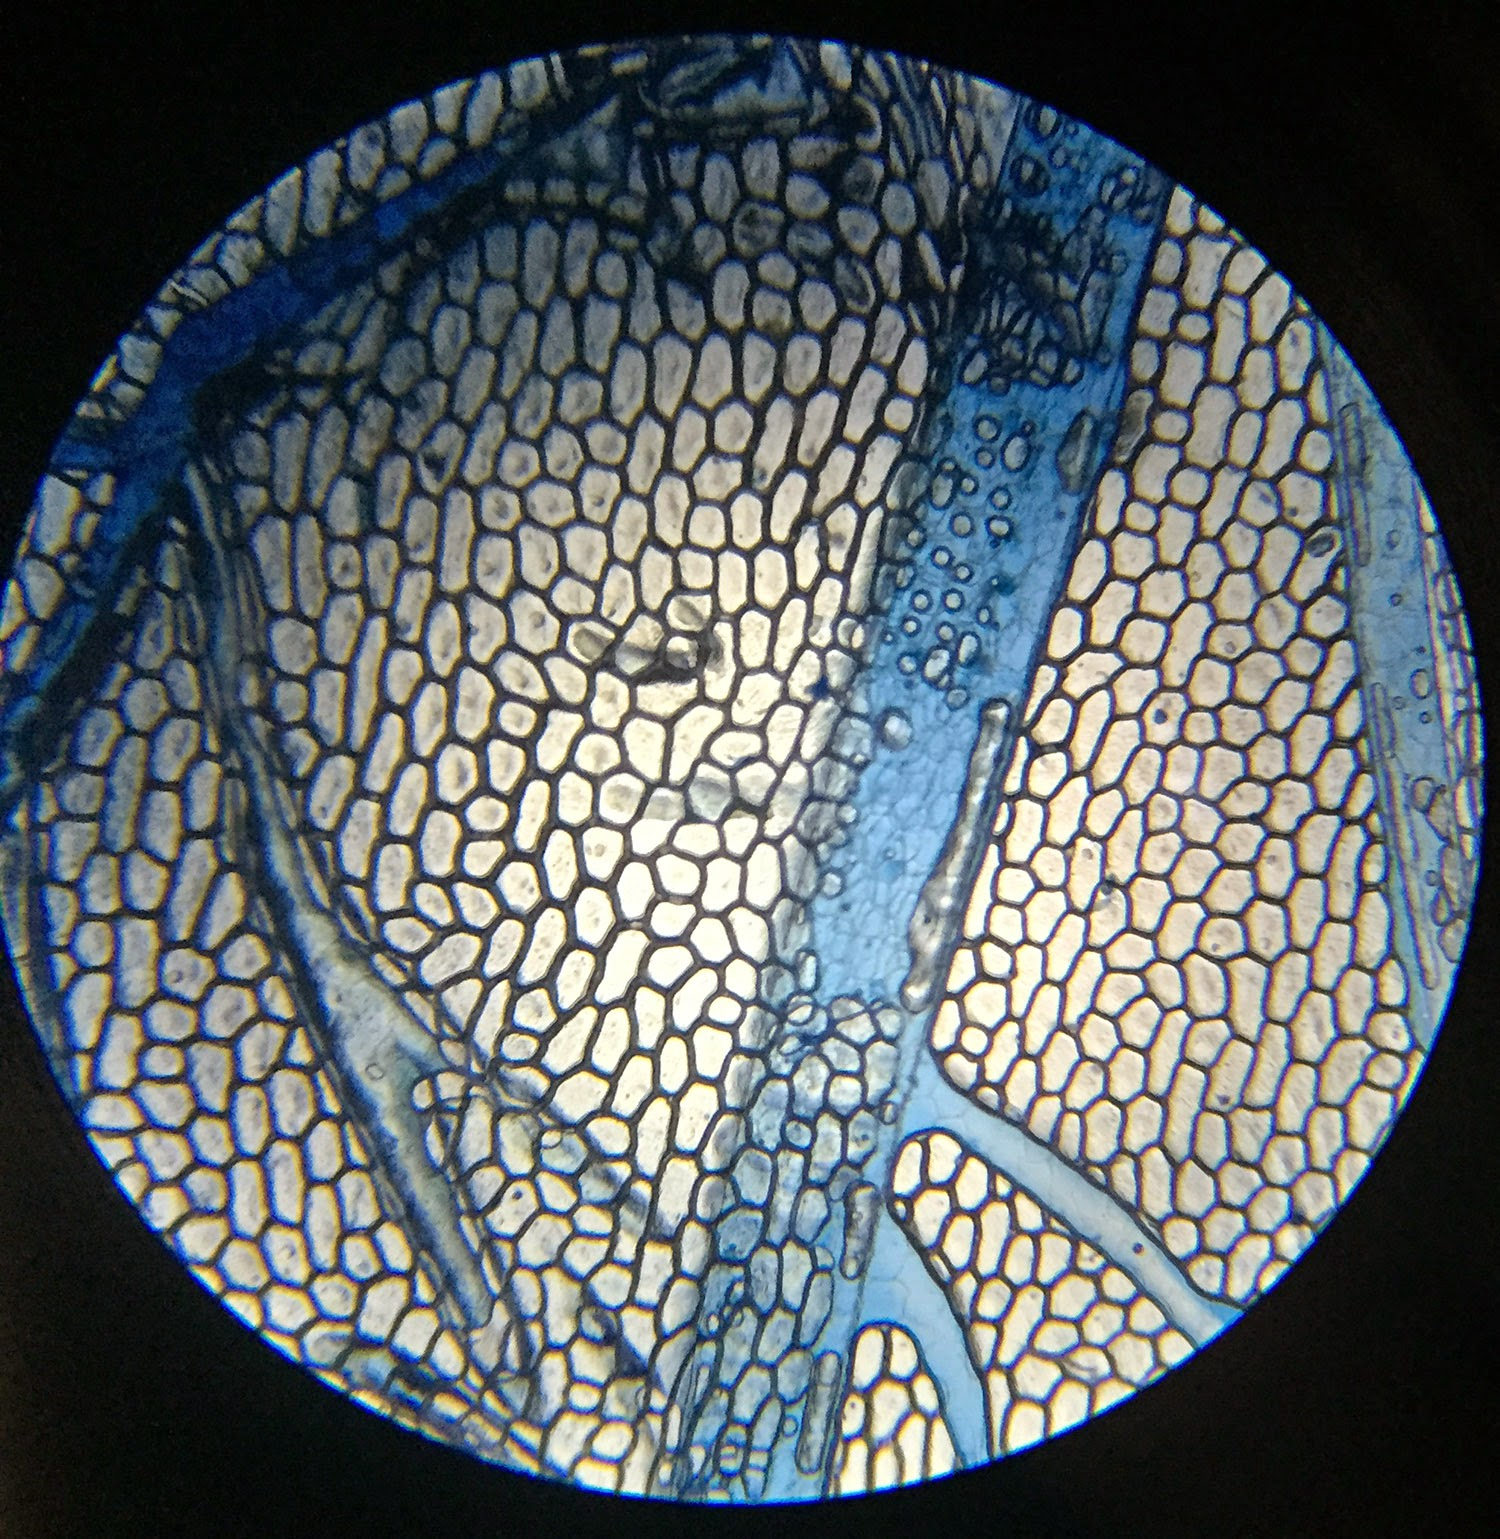 Animal cells under a microscope